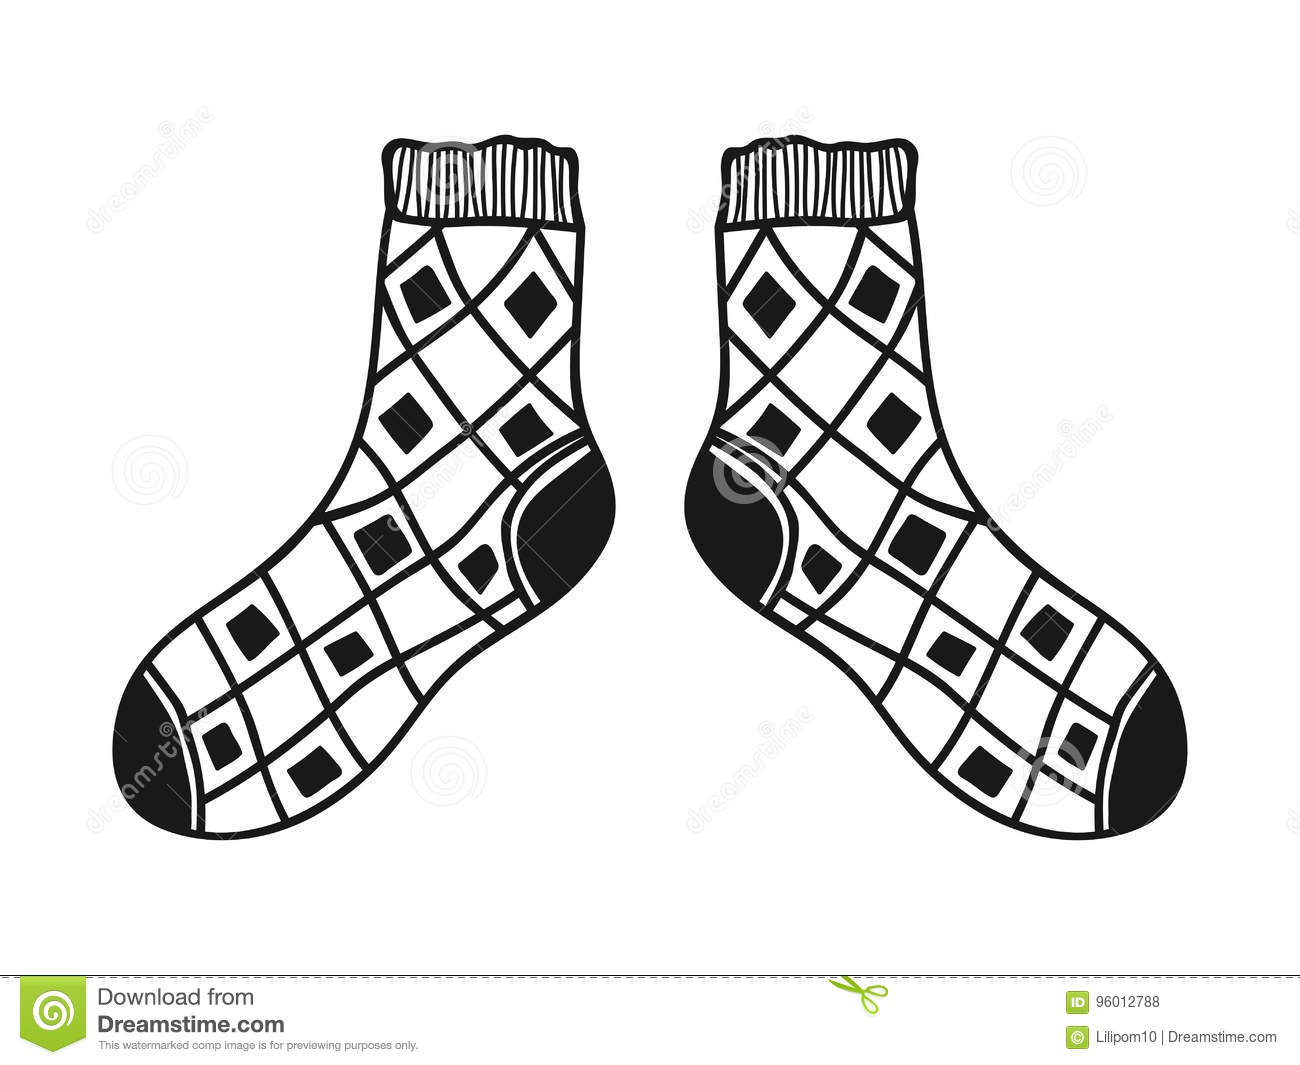 Santa Socks Coloring With Doodle Black And White Illustration For Book Pages